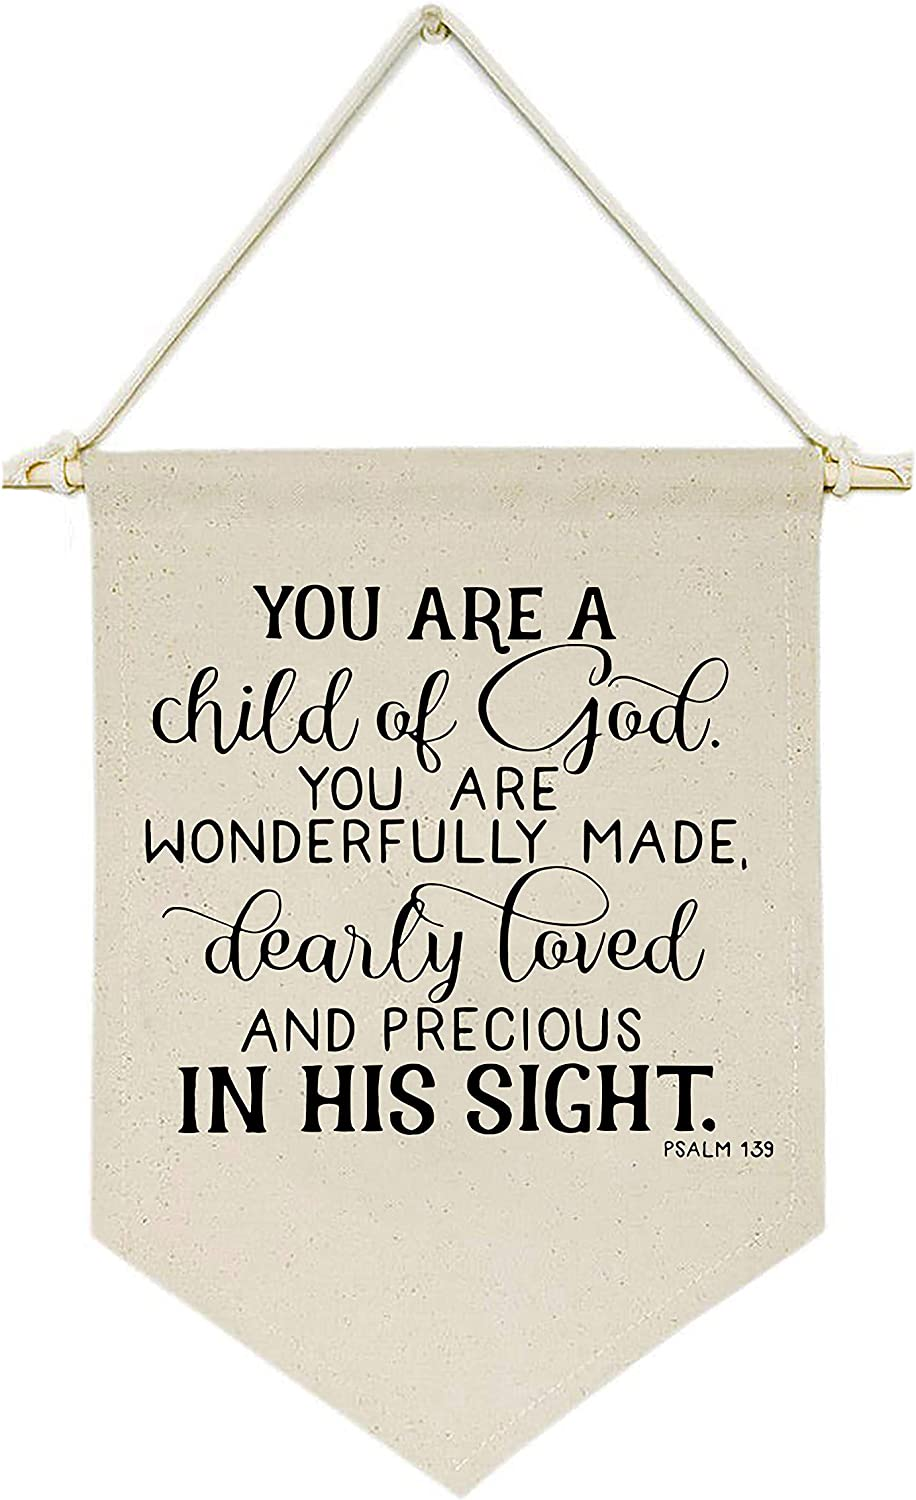 Topthink You are a Child of God You are Wonderfully Made - Canvas Hanging Flag Banner Wall Sign Decor Gift for Baby Kids Girl Boy Nursery Teen Room Front Door - Motivational Inspirational Decor